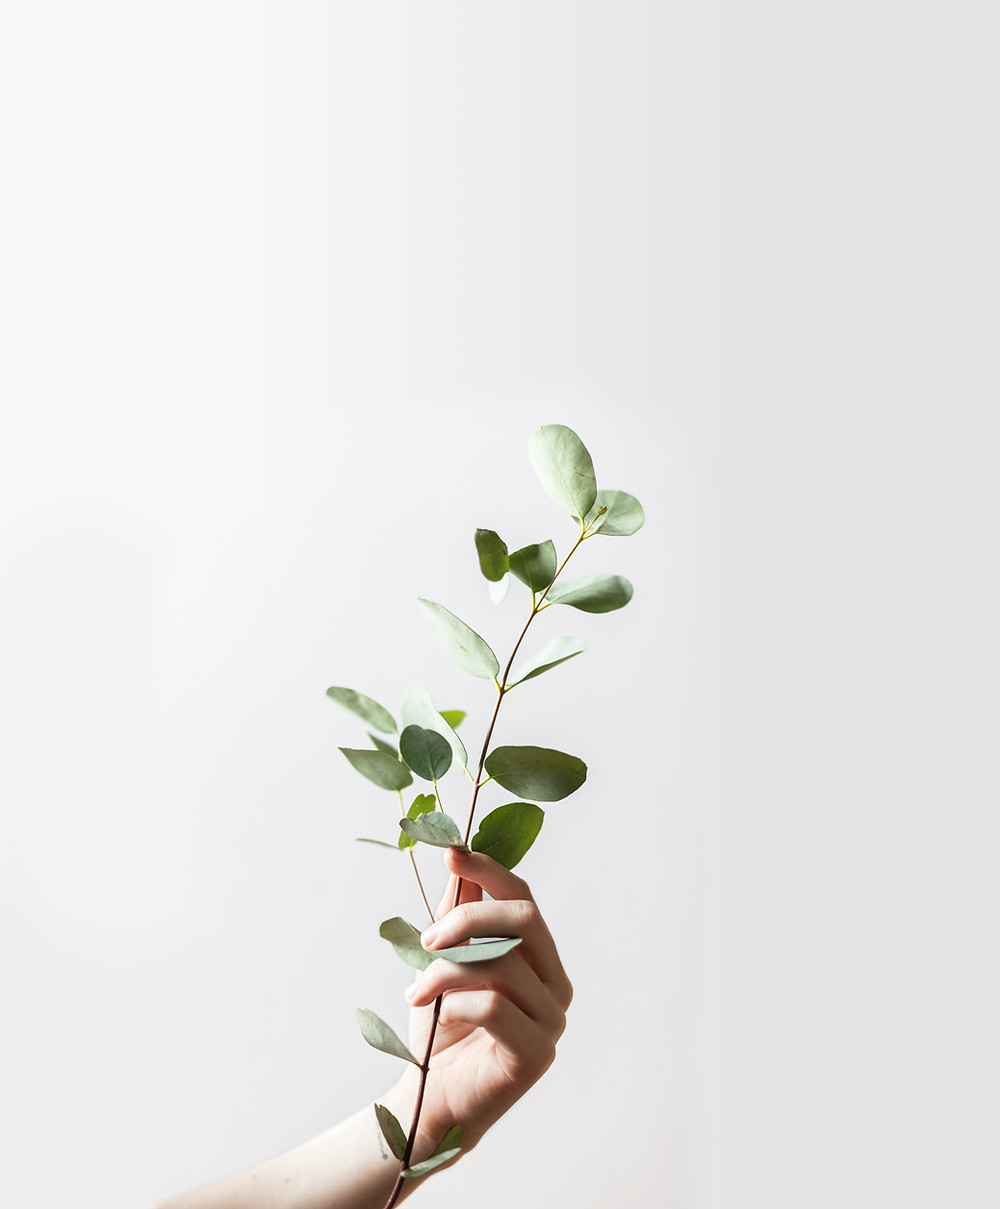 hand holding branch with leaves